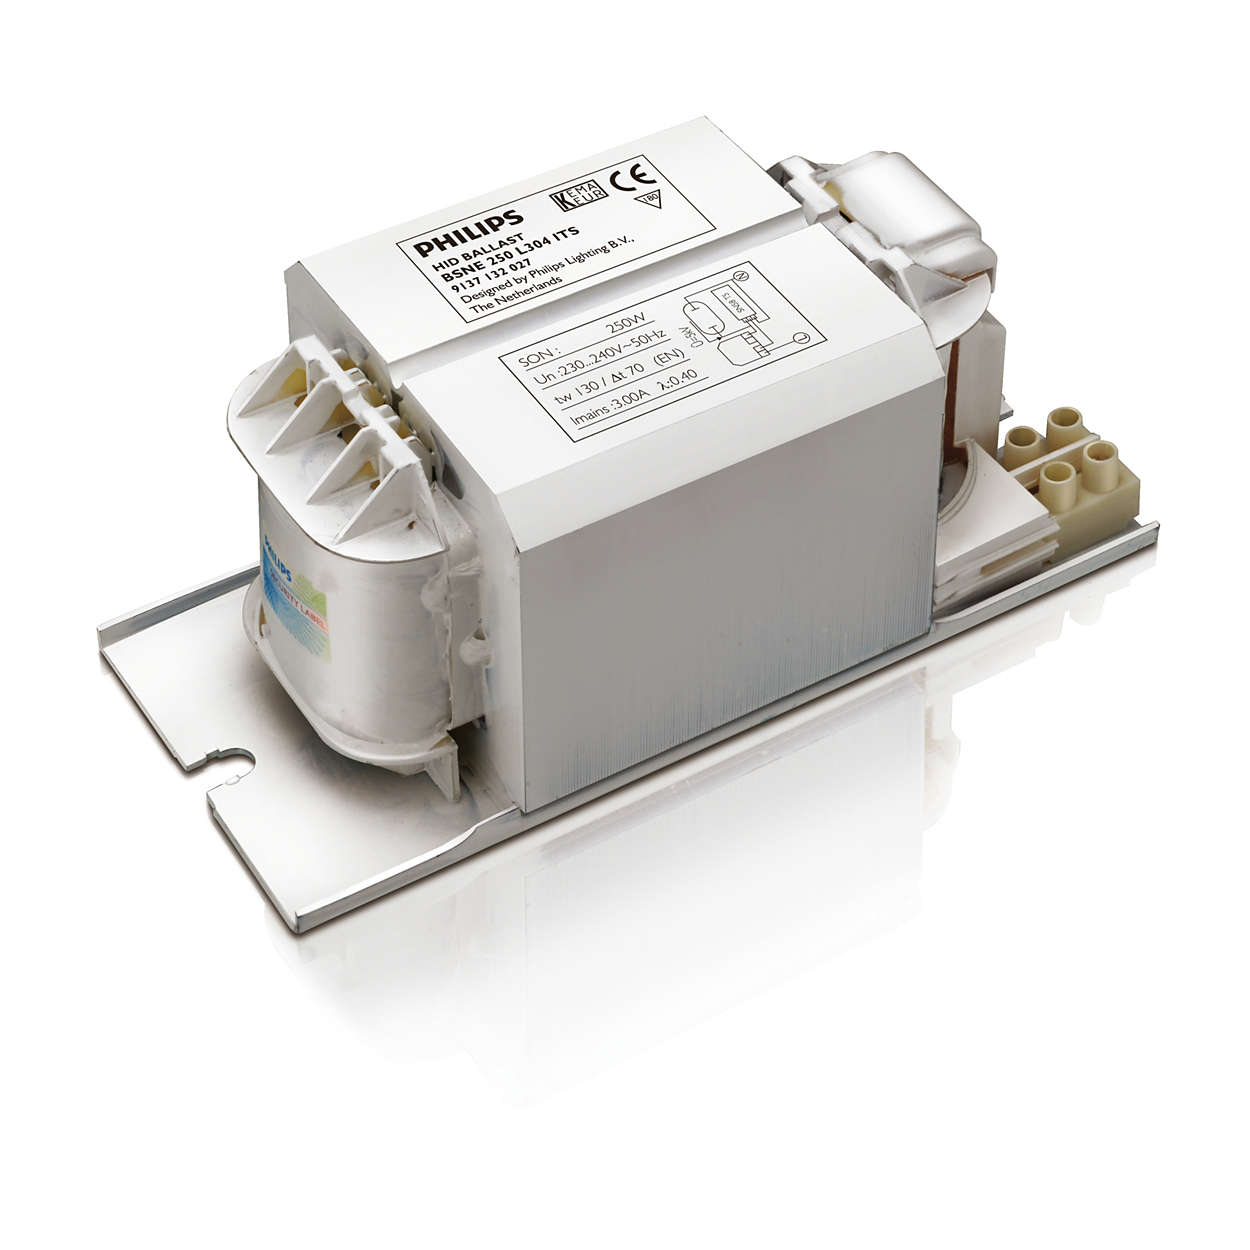 HID-Basic Semi-Parallel ballasts for SON/CDM/MH lamps